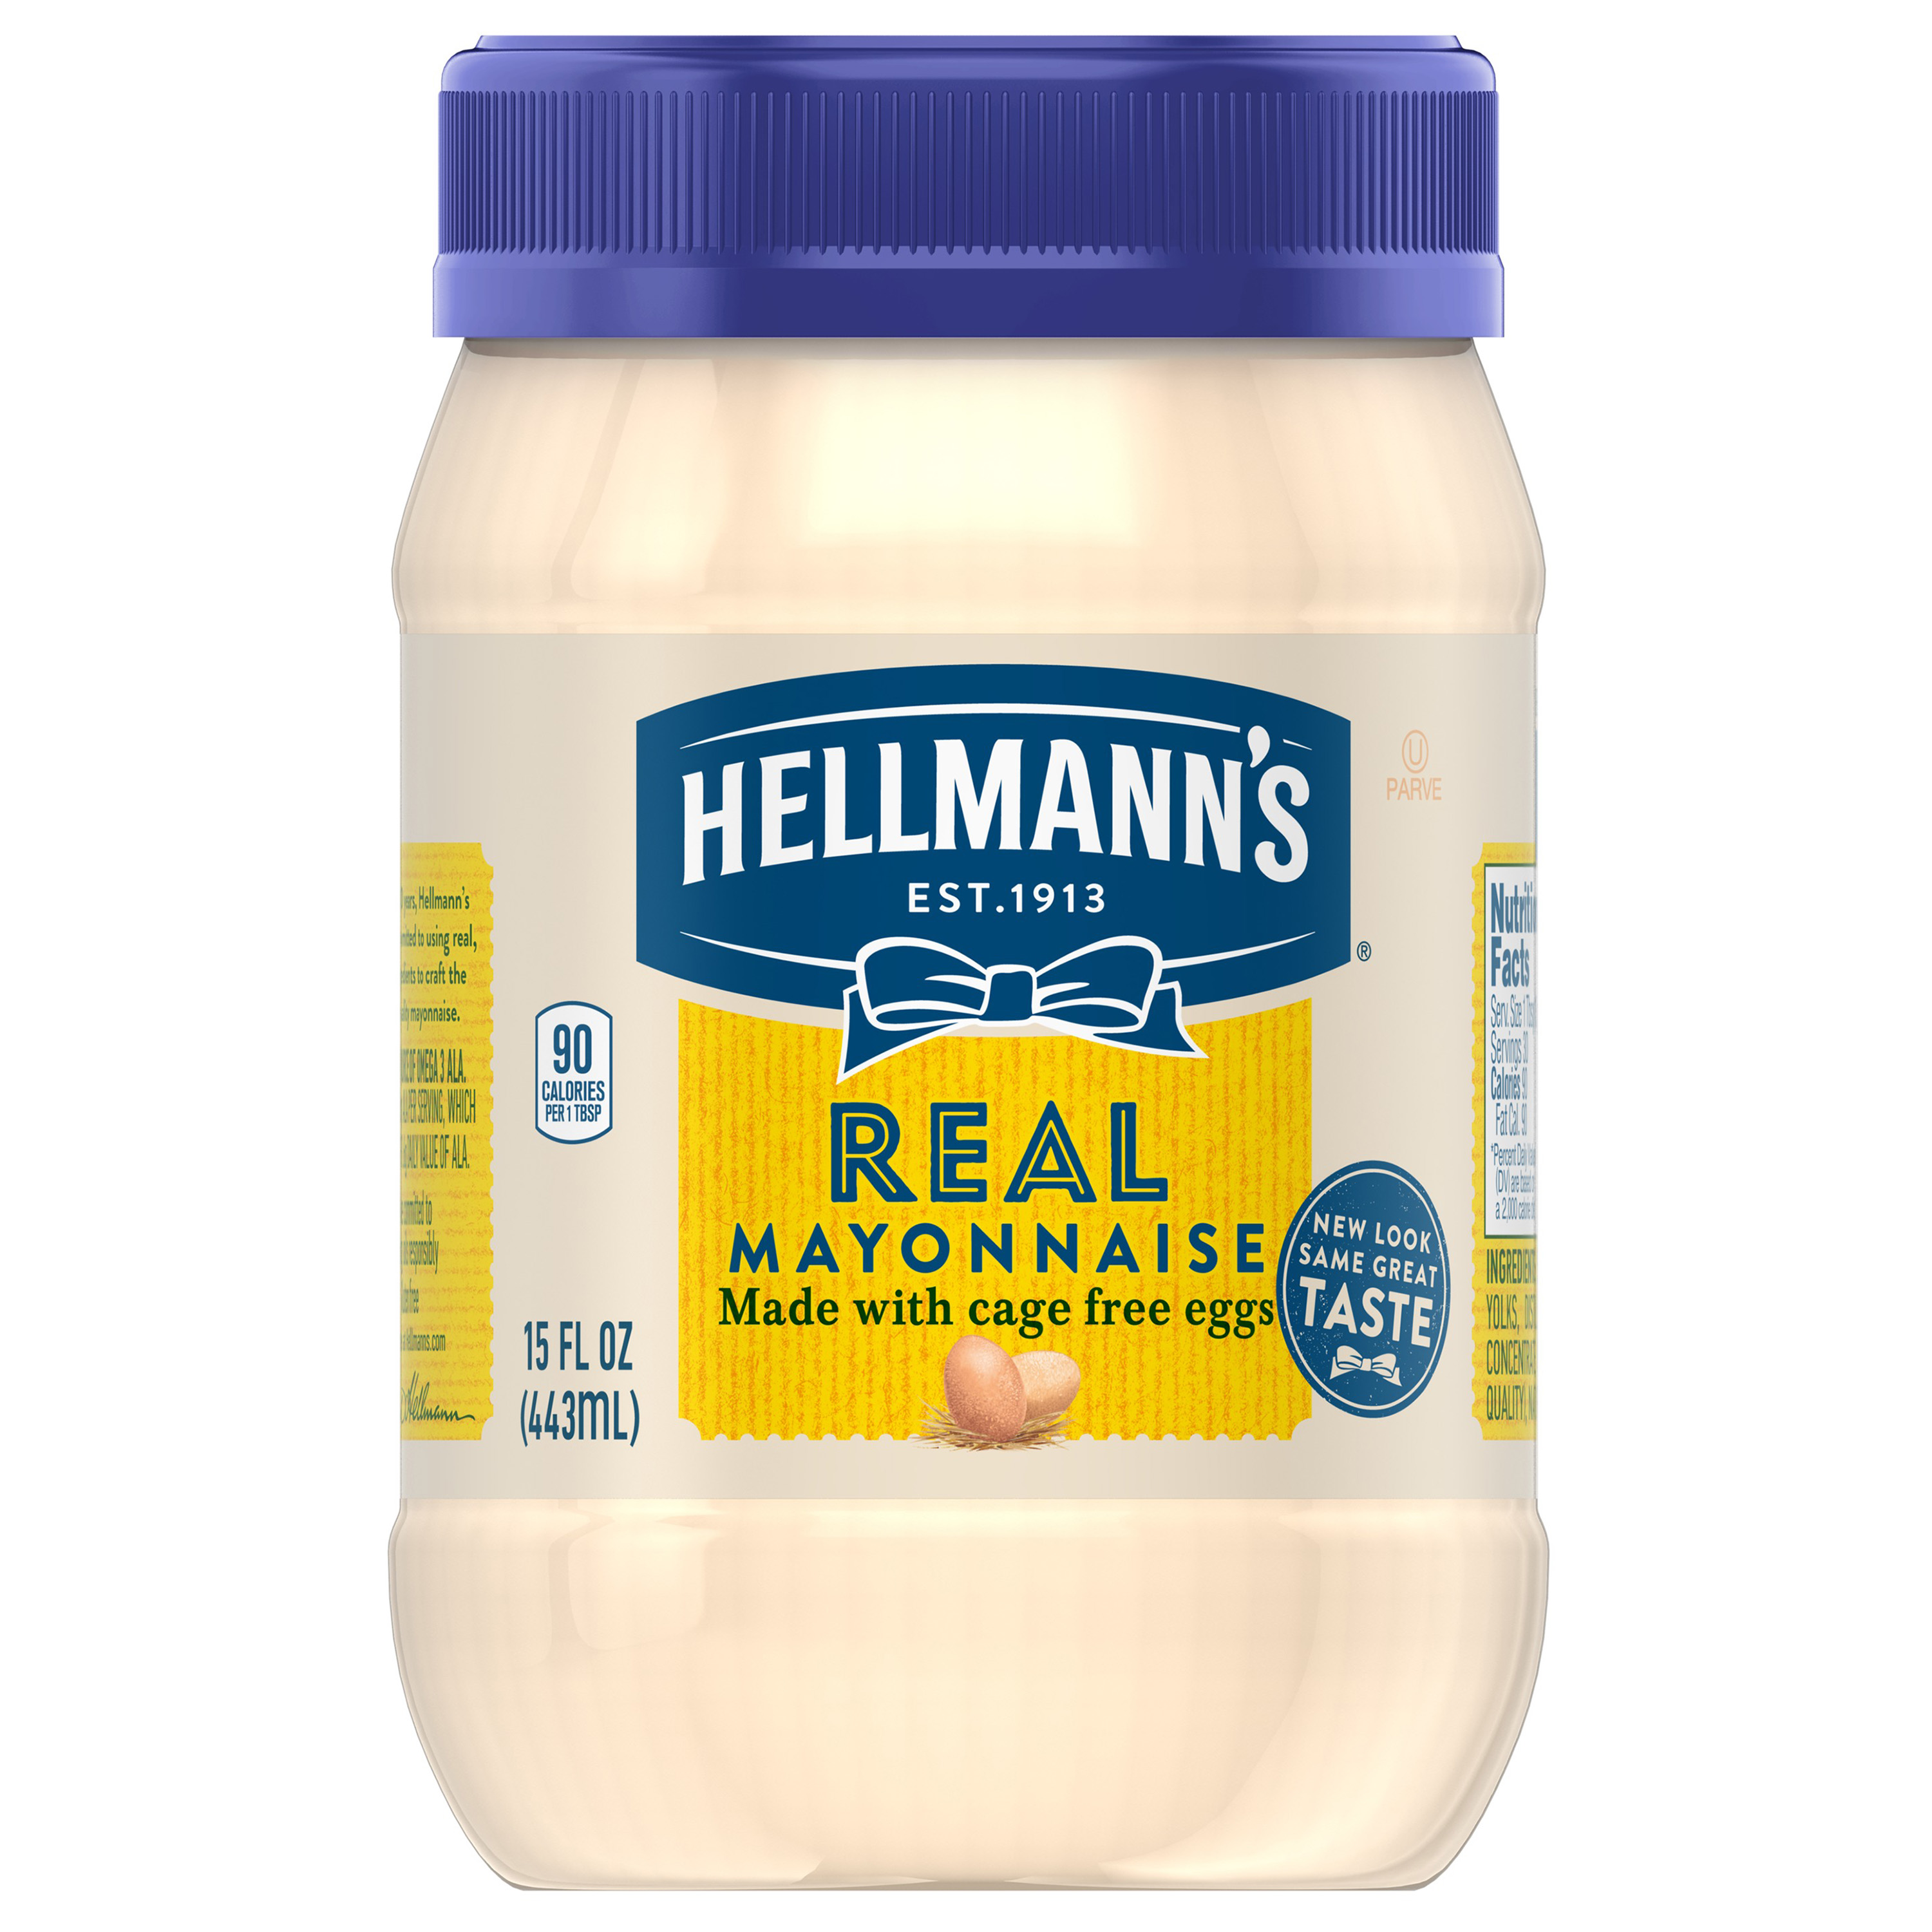 Hellmann's Real Mayonnaise, 15 oz